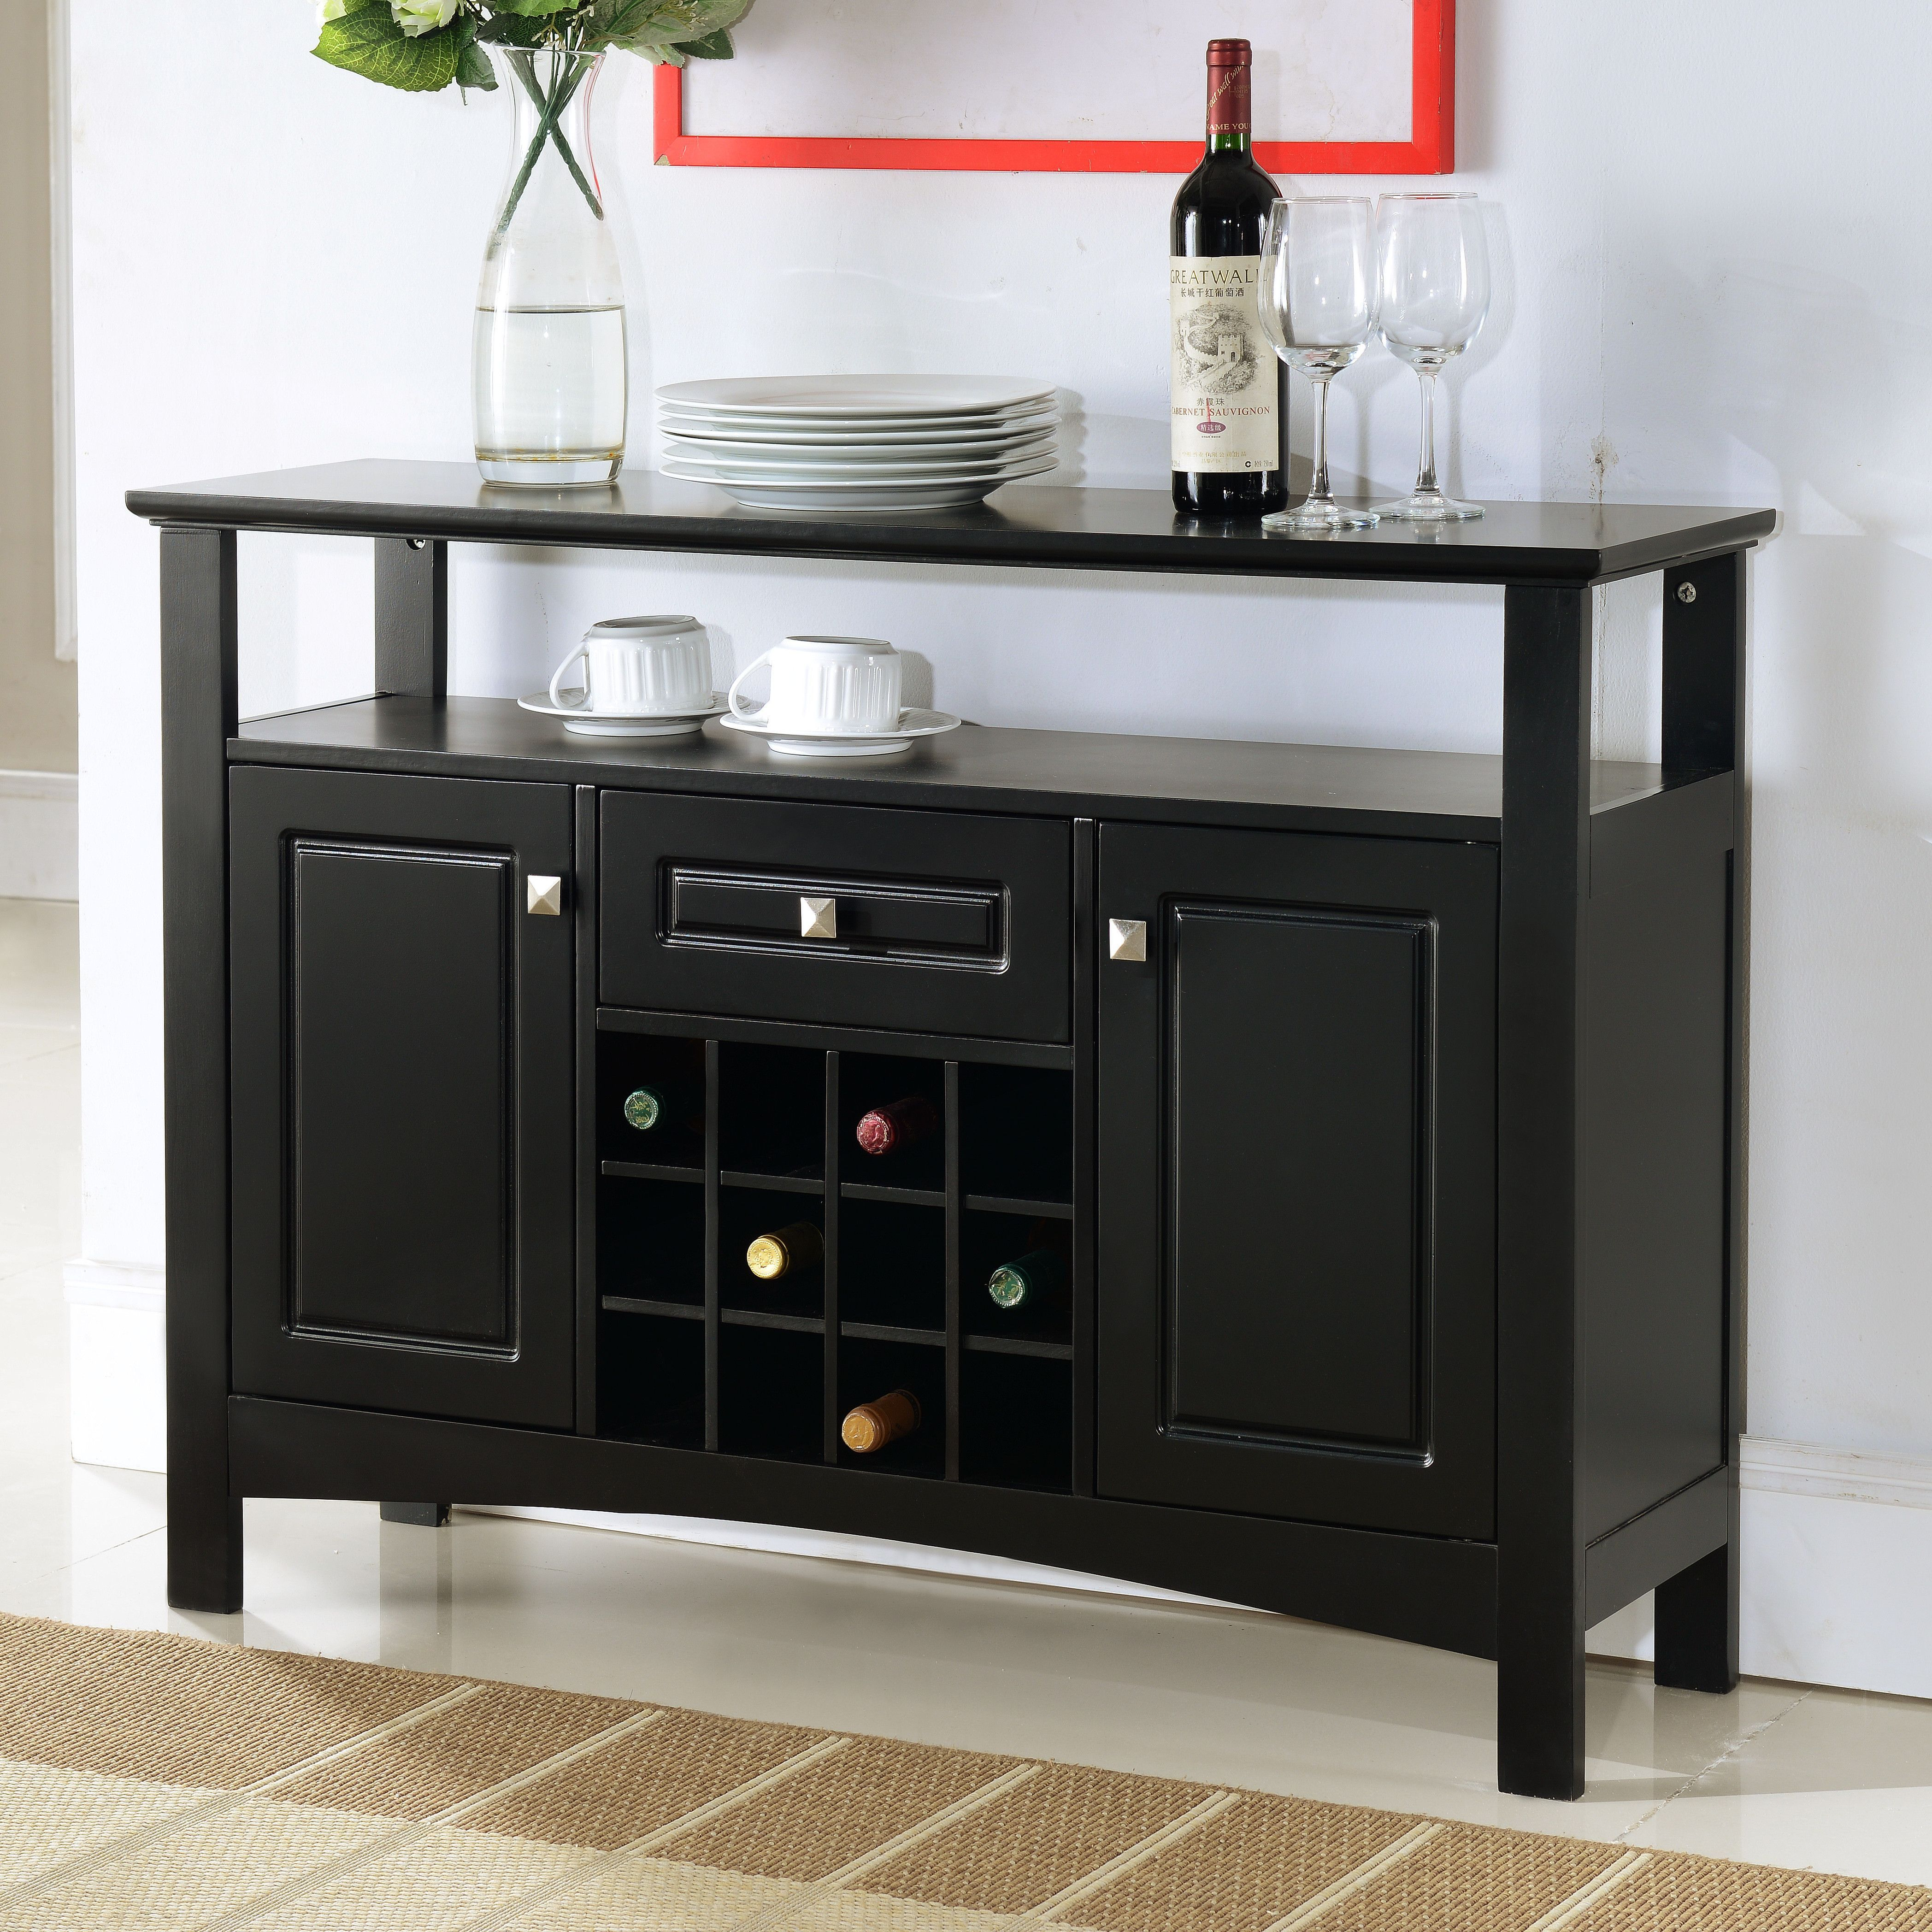 Casual Dining Room Buffet Decorating Ideas: 20 Best Buffet And Sideboards For Dining Rooms